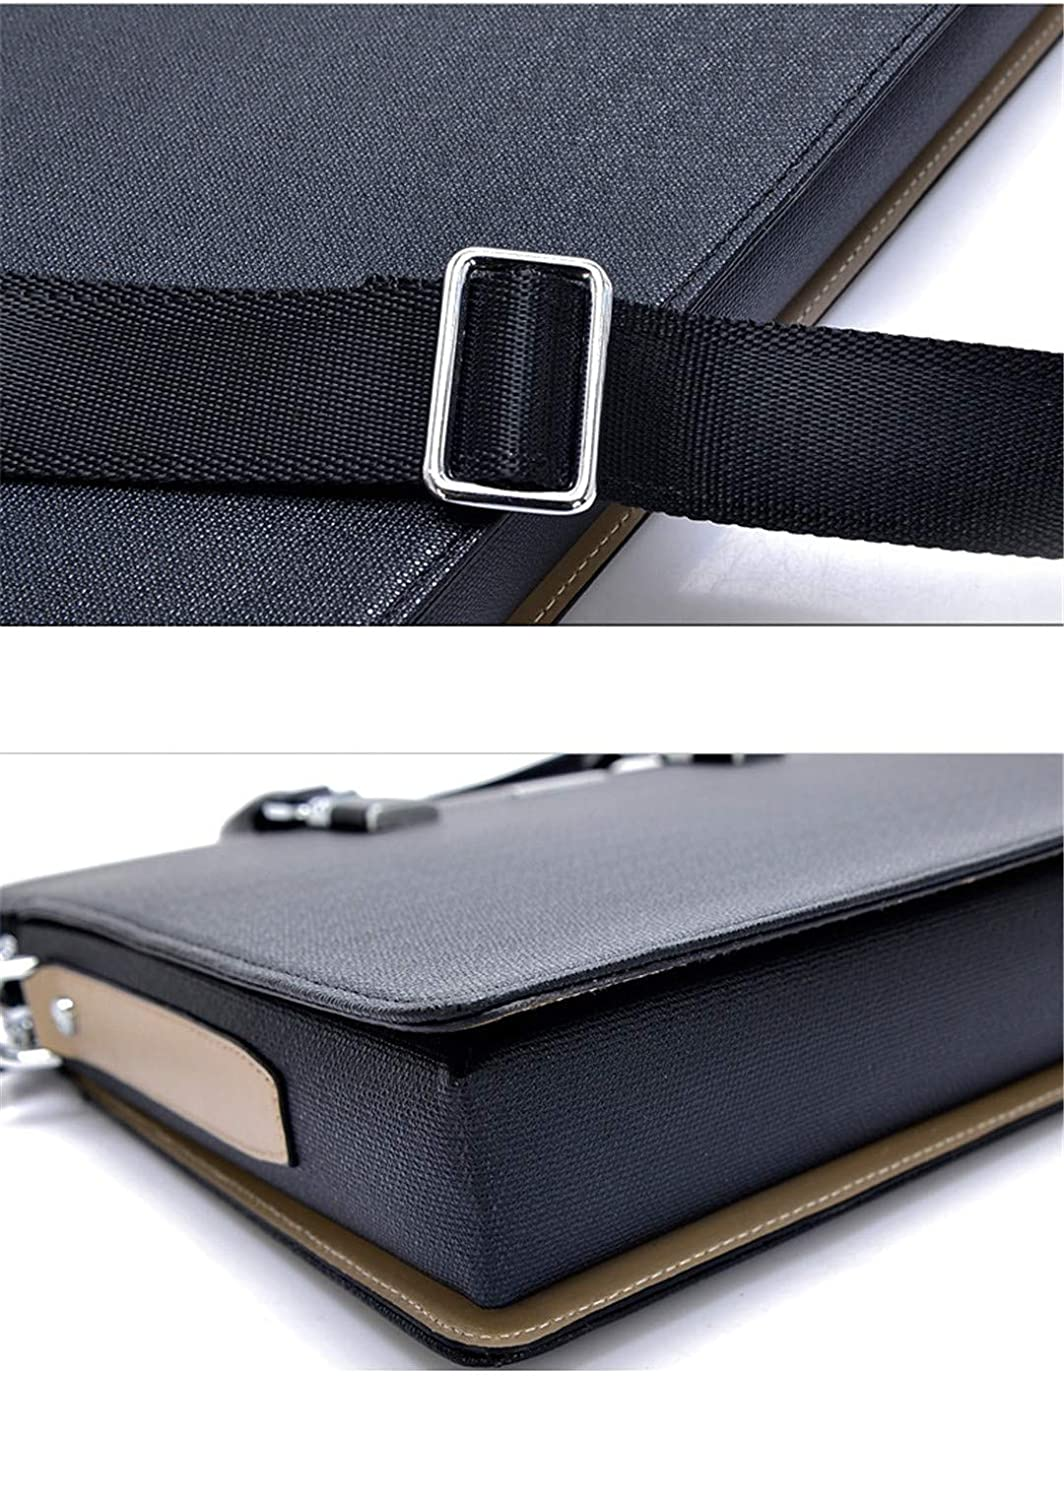 PU Leather Laptop Bag For Office Large Capacity Waterproof Casual Man Shoulder Document Bags Tote